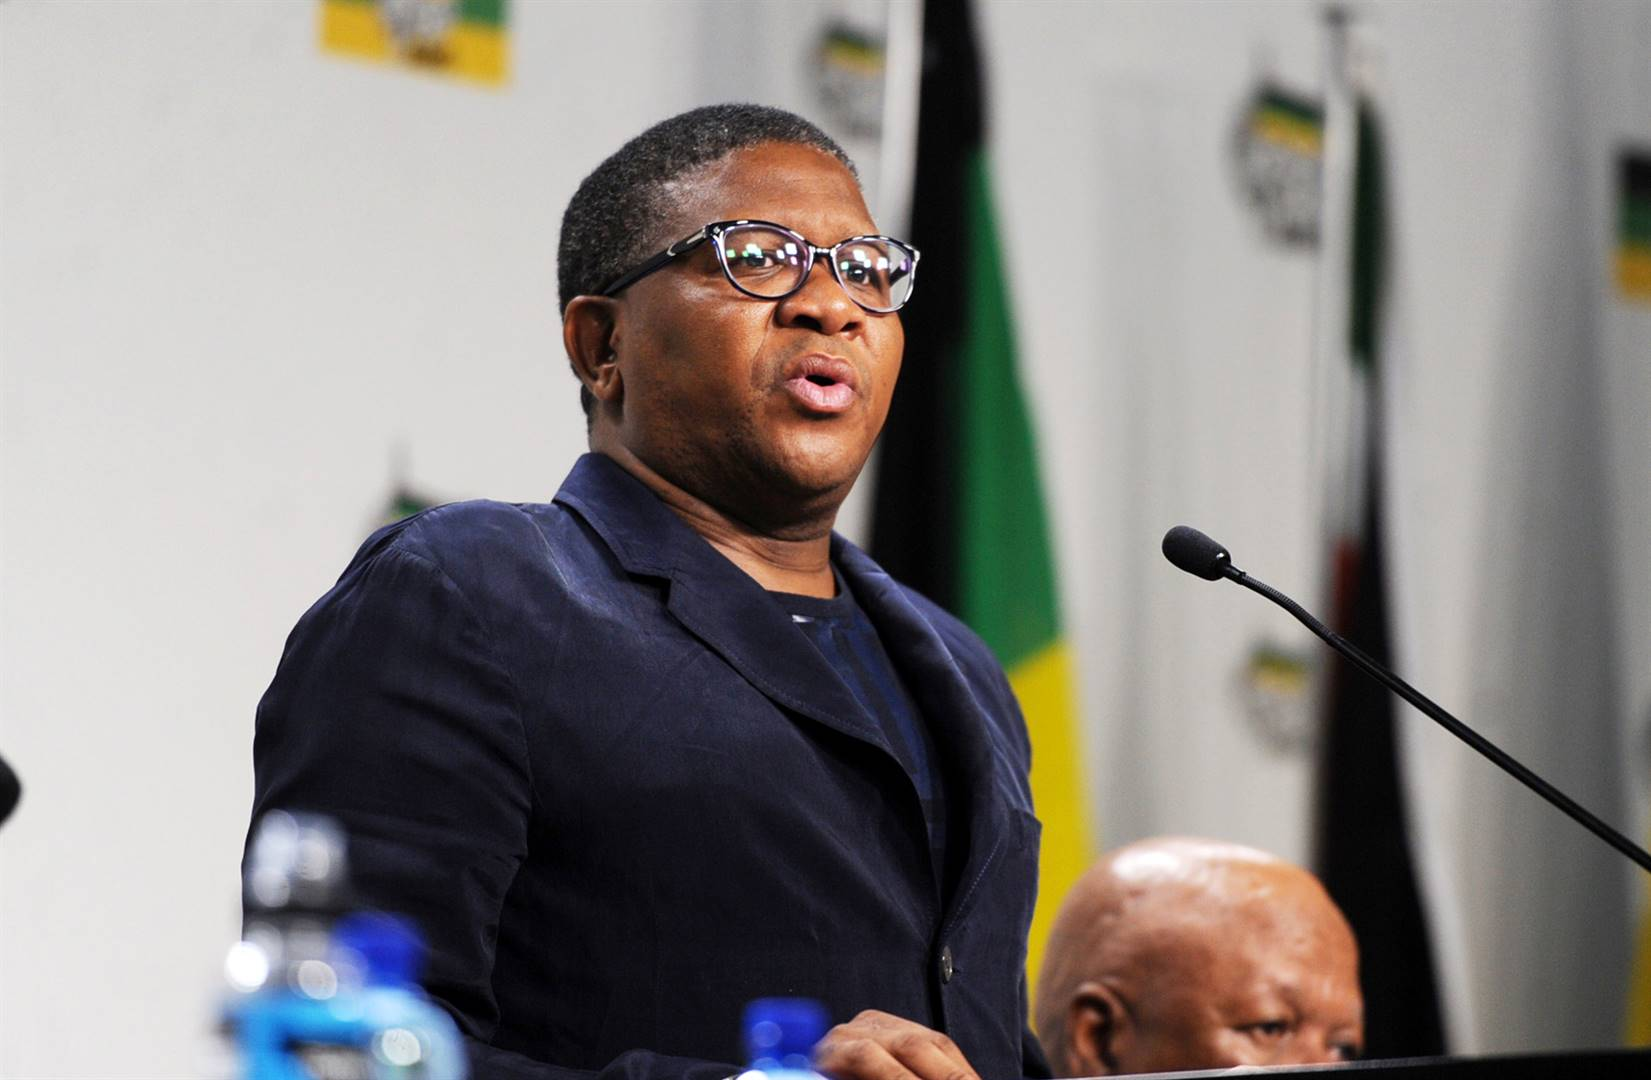 Fikile Mbalula sued for defamation by Carl Niehaus Photo: Daily Sun